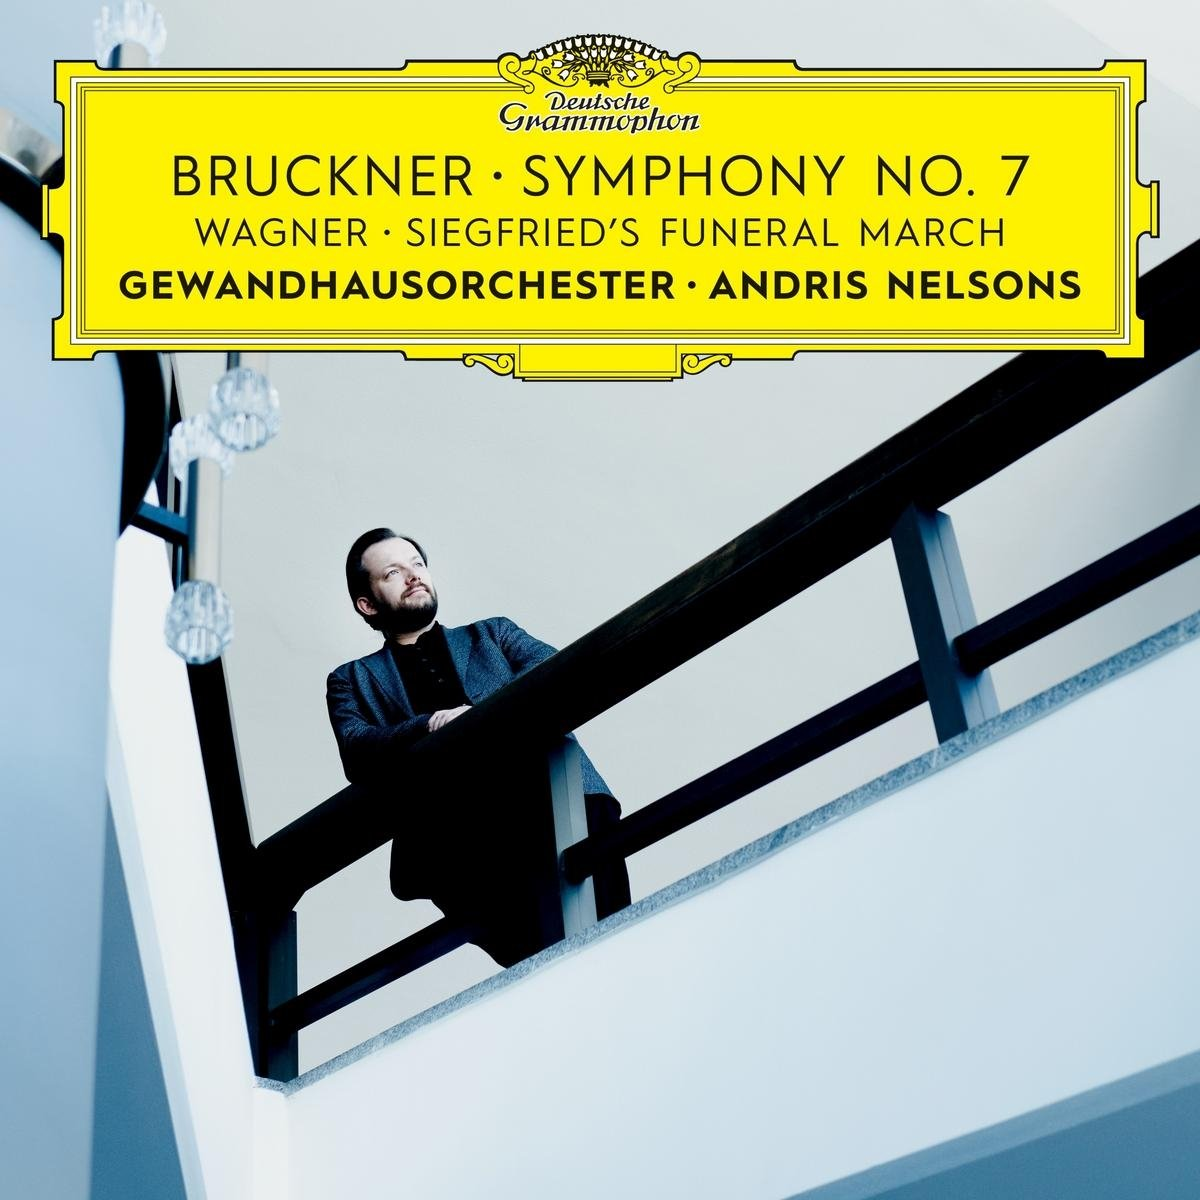 Bruckner Symphony No. 7 / Wagner: Siegfried's Funeral March